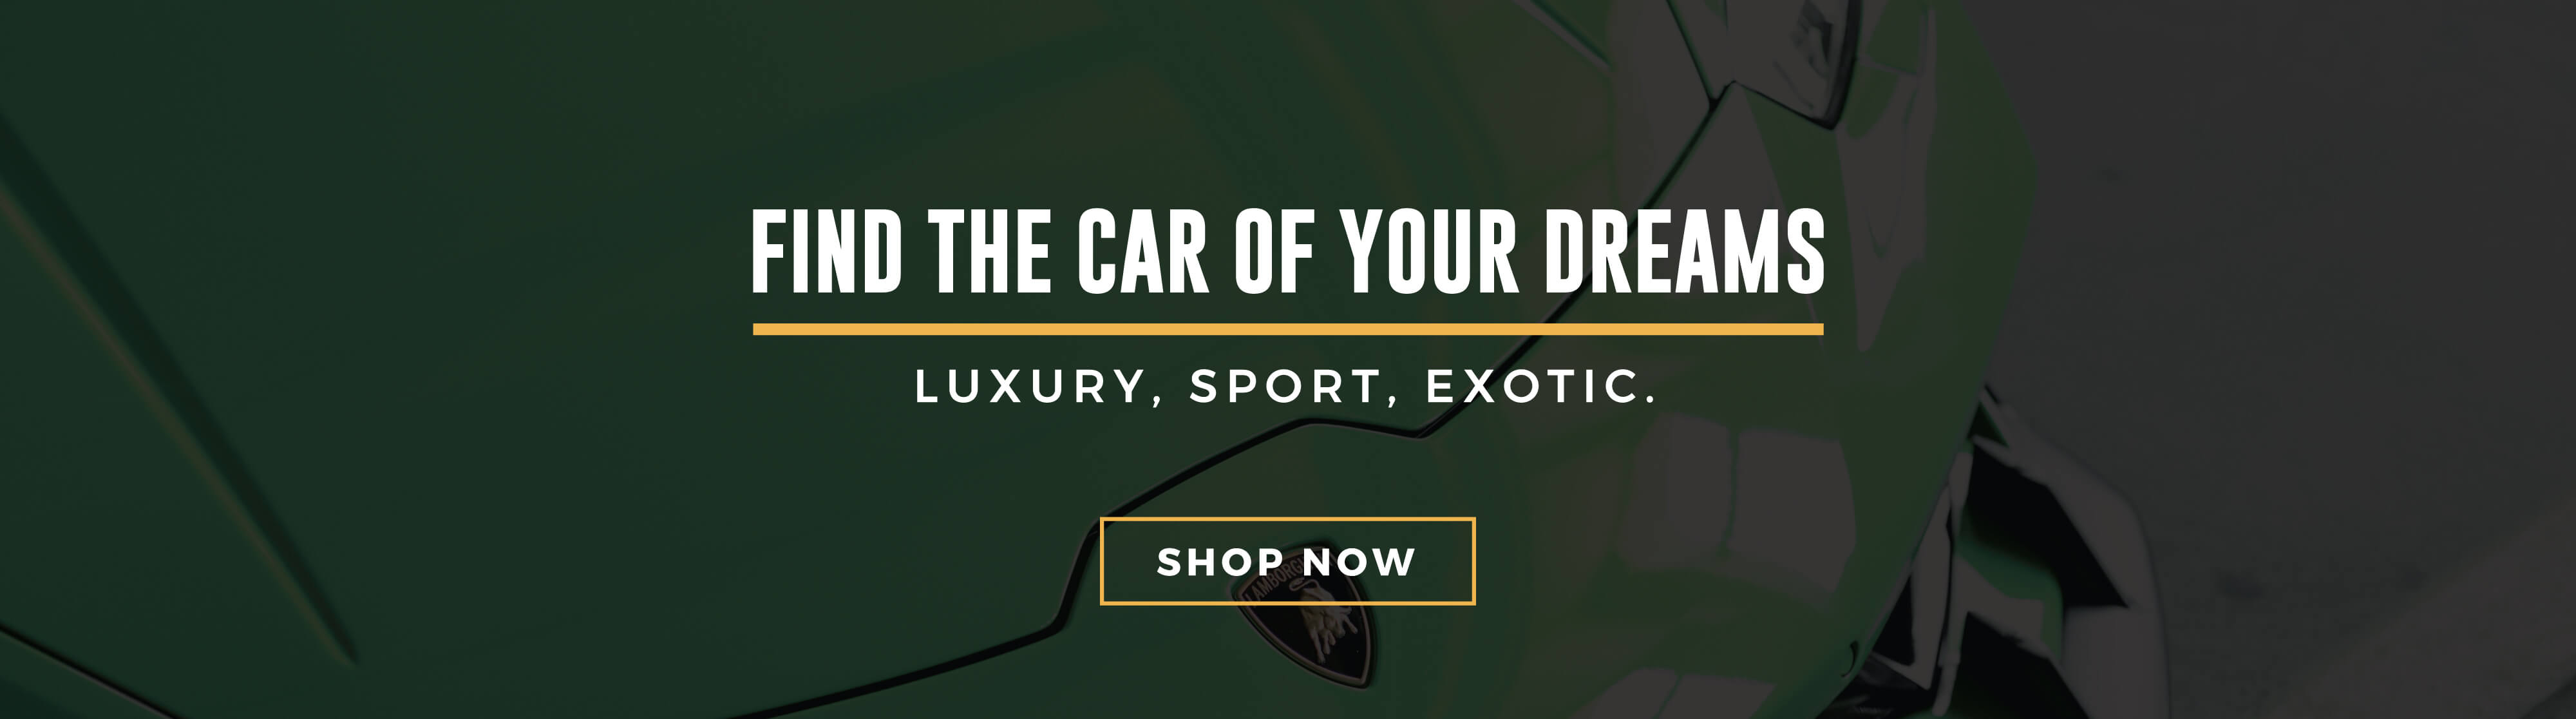 Find the car of your dreams at Humberview Motorsports